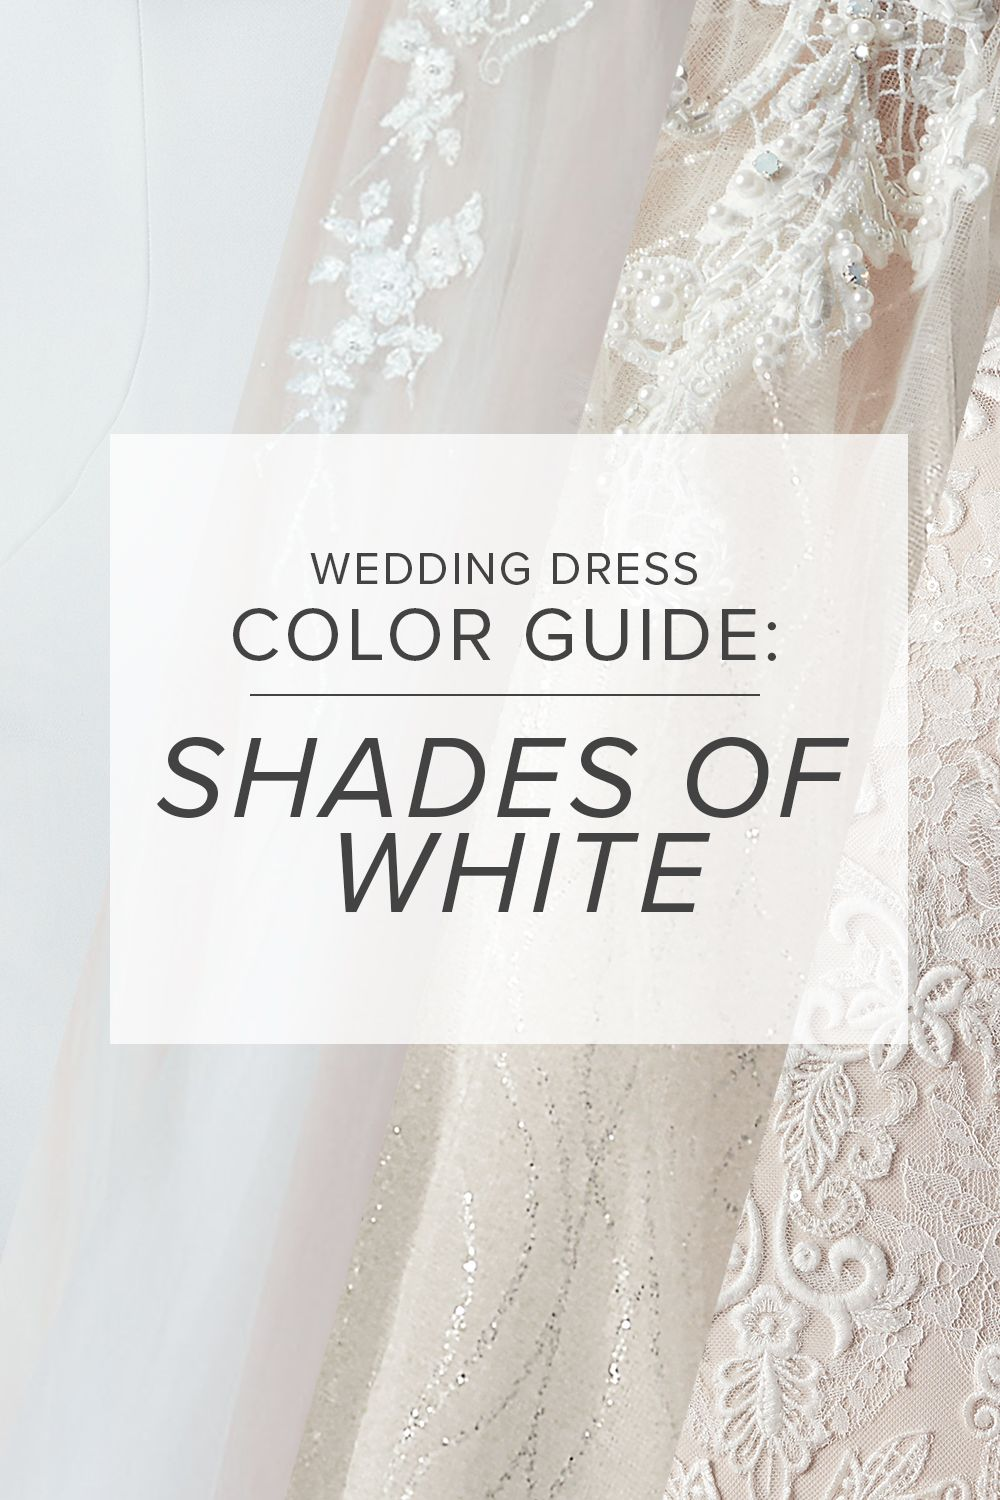 The Ultimate Wedding Dress Color Guide Shades Of White Colored Wedding Dresses Colorful Dresses Off White Wedding Dresses [ 1500 x 1000 Pixel ]